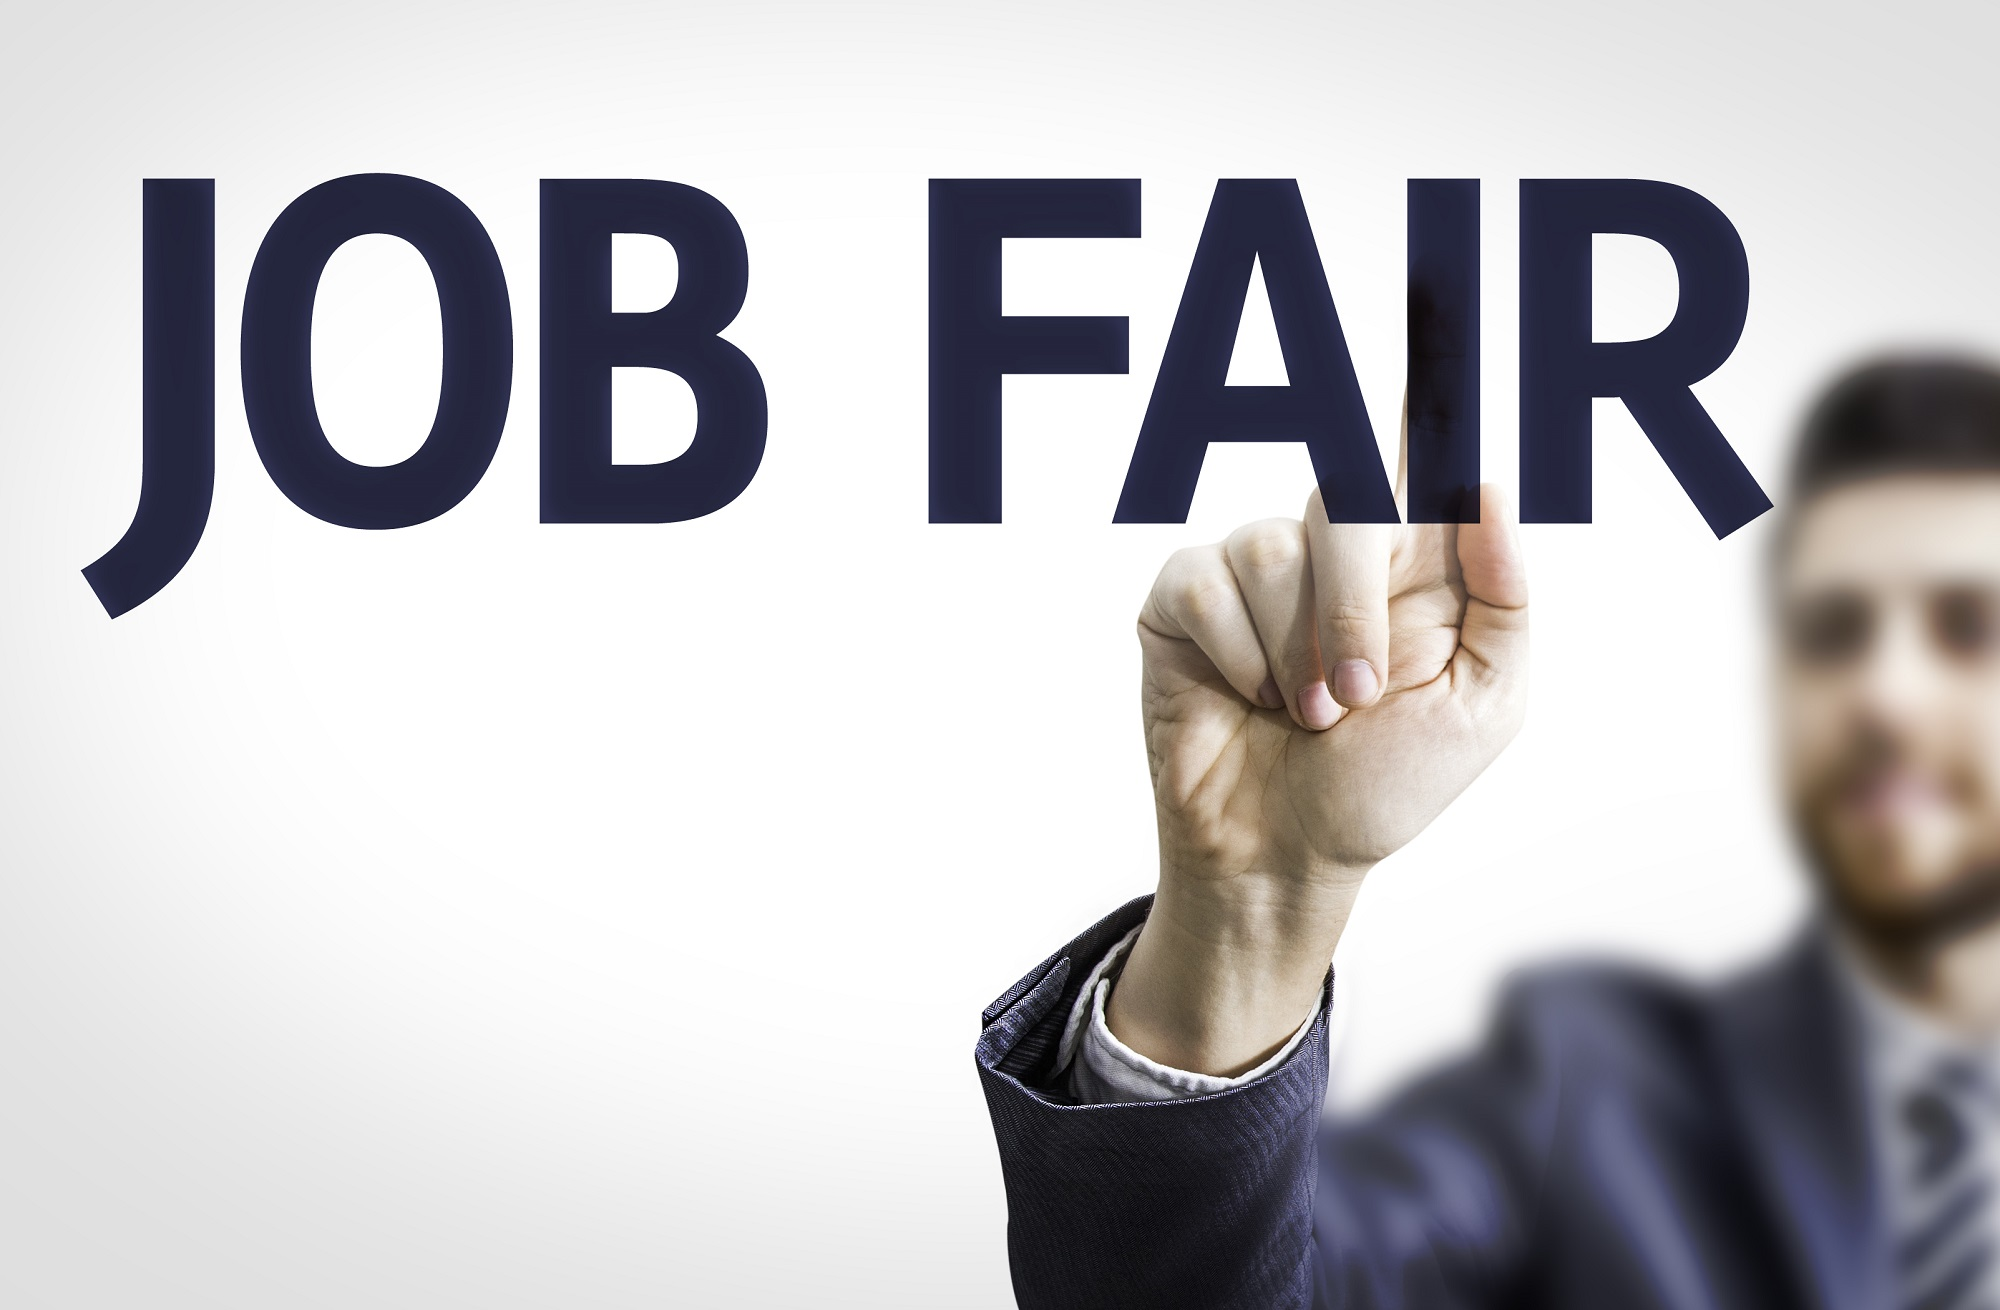 Job Fair Stock Photo Image